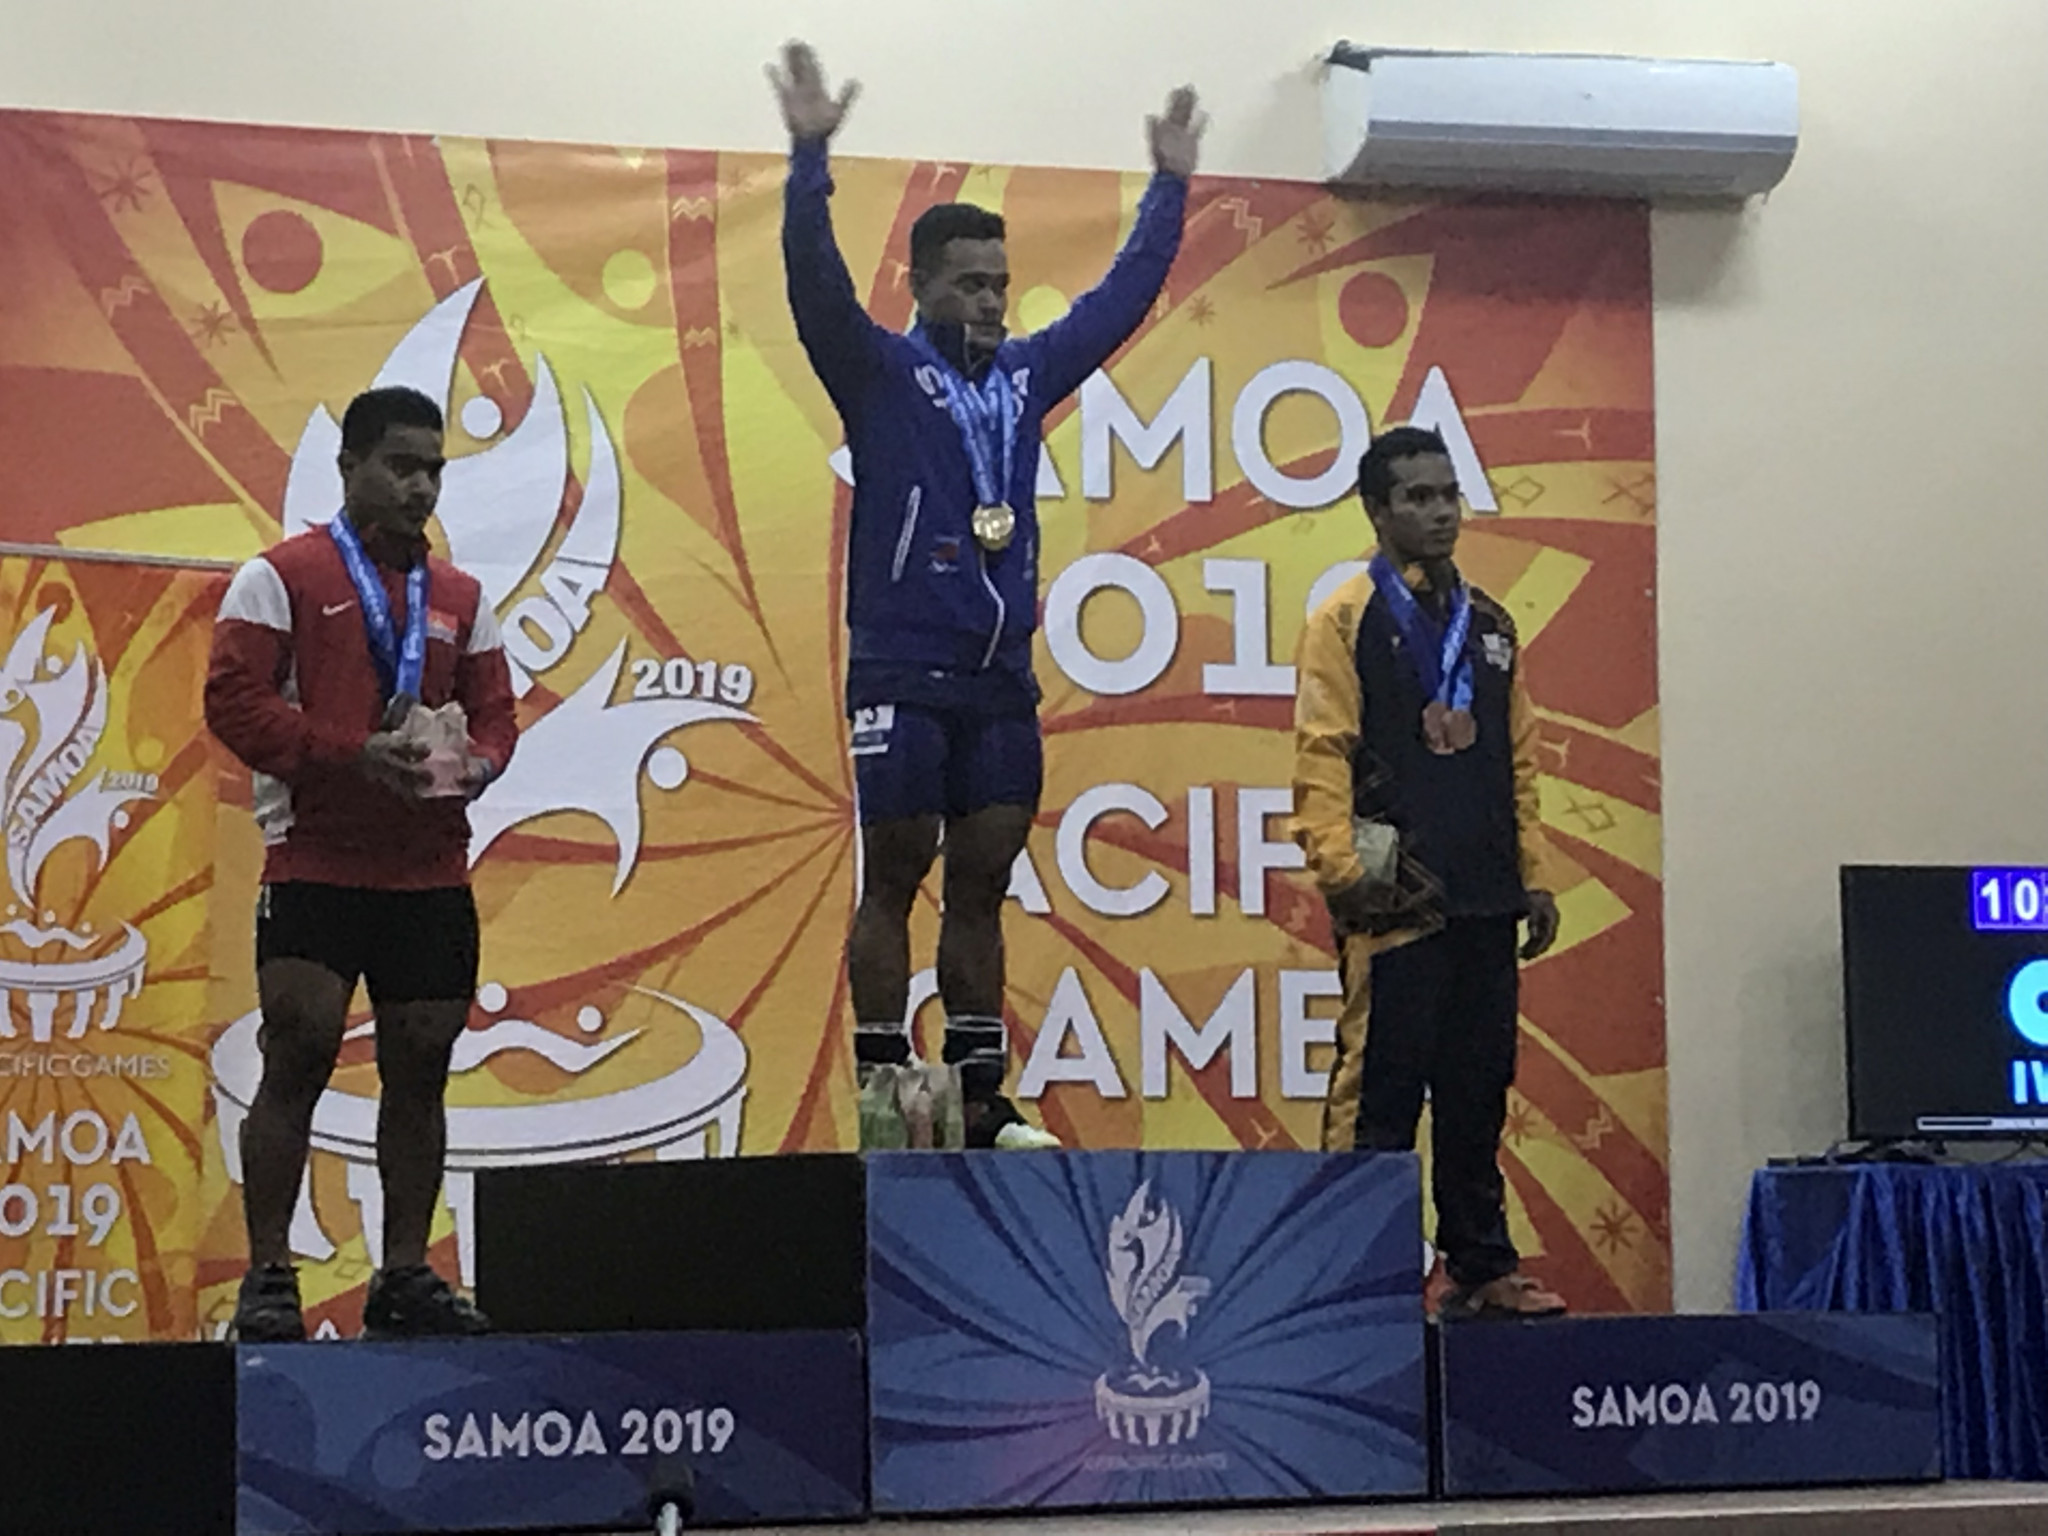 Samoa's Vaipava Nevo Ioane took all three gold medals in the men's 67kg weightlifting competition ©ITG